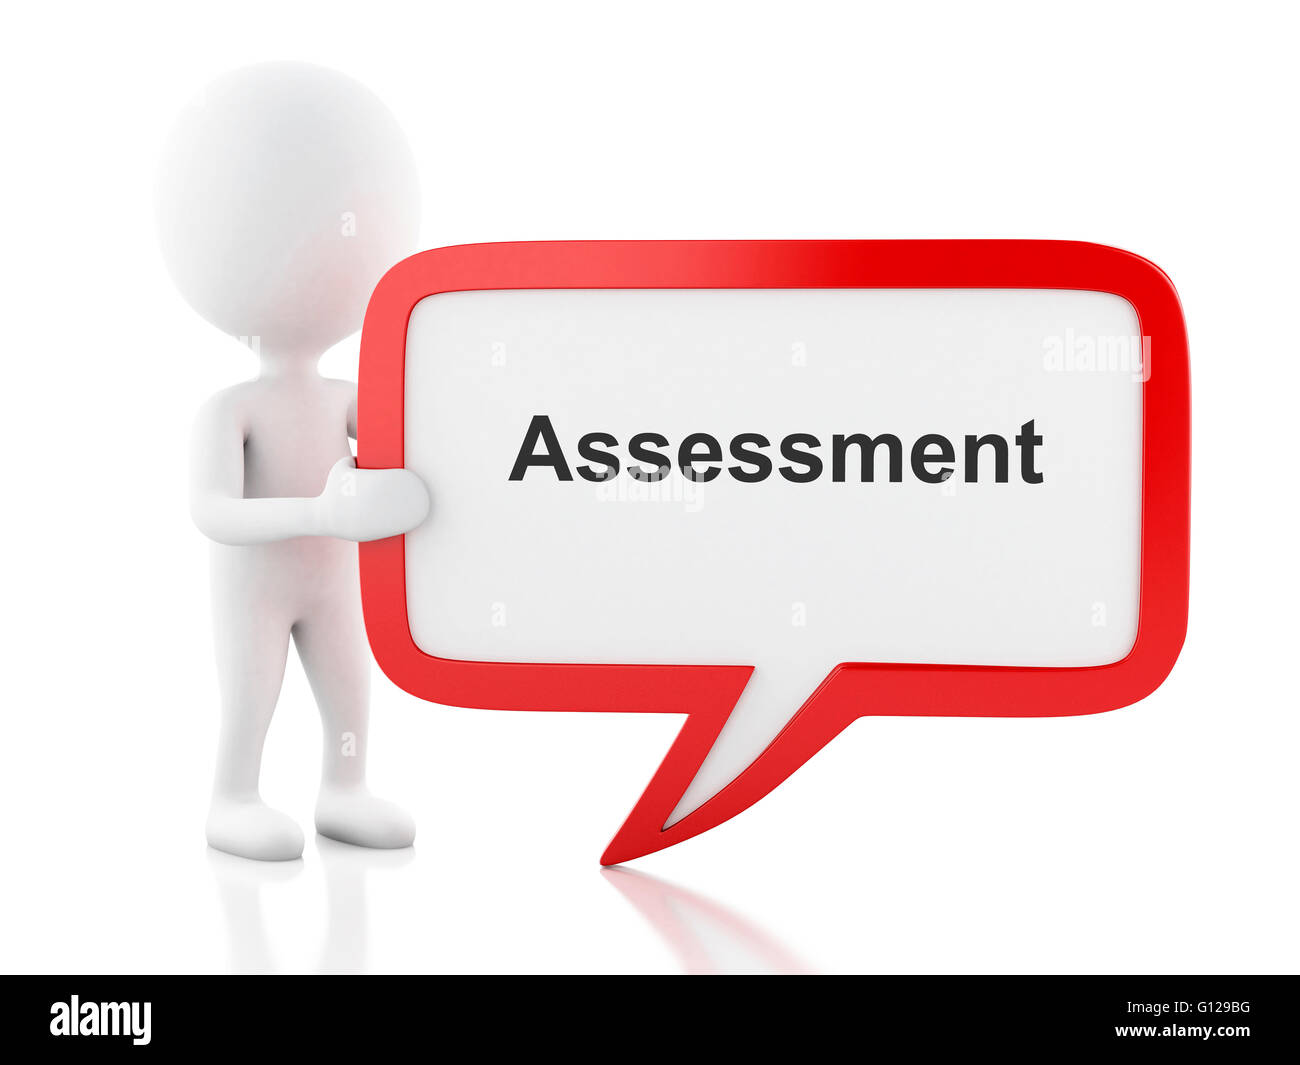 3d renderer image. White people with speech bubble that says assessment. Business concept. Isolated white background. - Stock Image